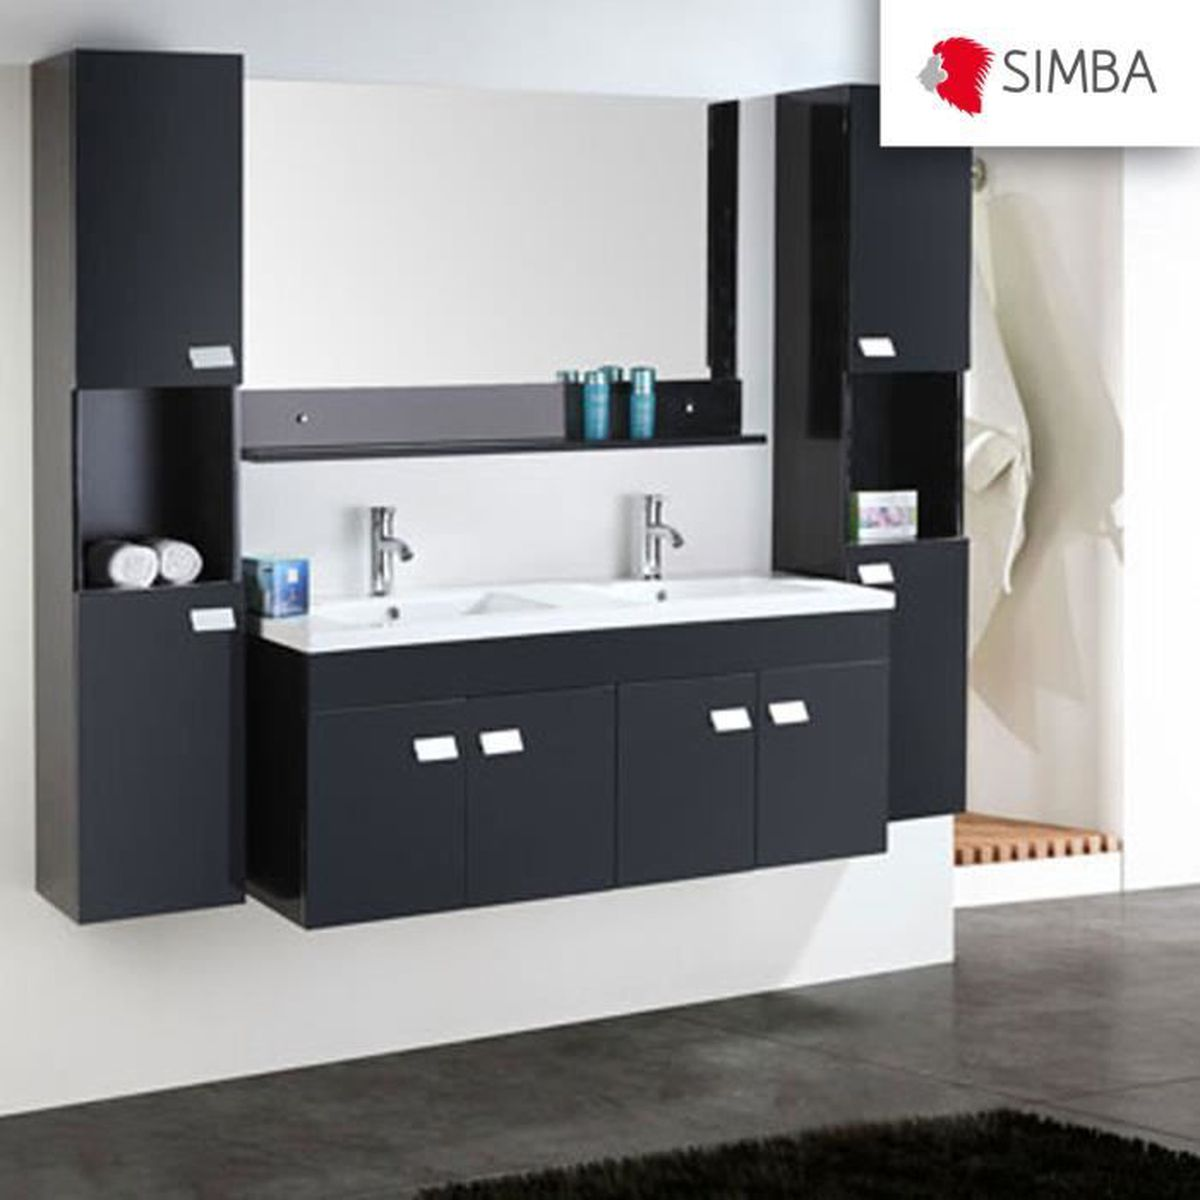 meuble salle de bain 120 cm noir set colonne vasque robinett elegance ensemble comme dans la. Black Bedroom Furniture Sets. Home Design Ideas